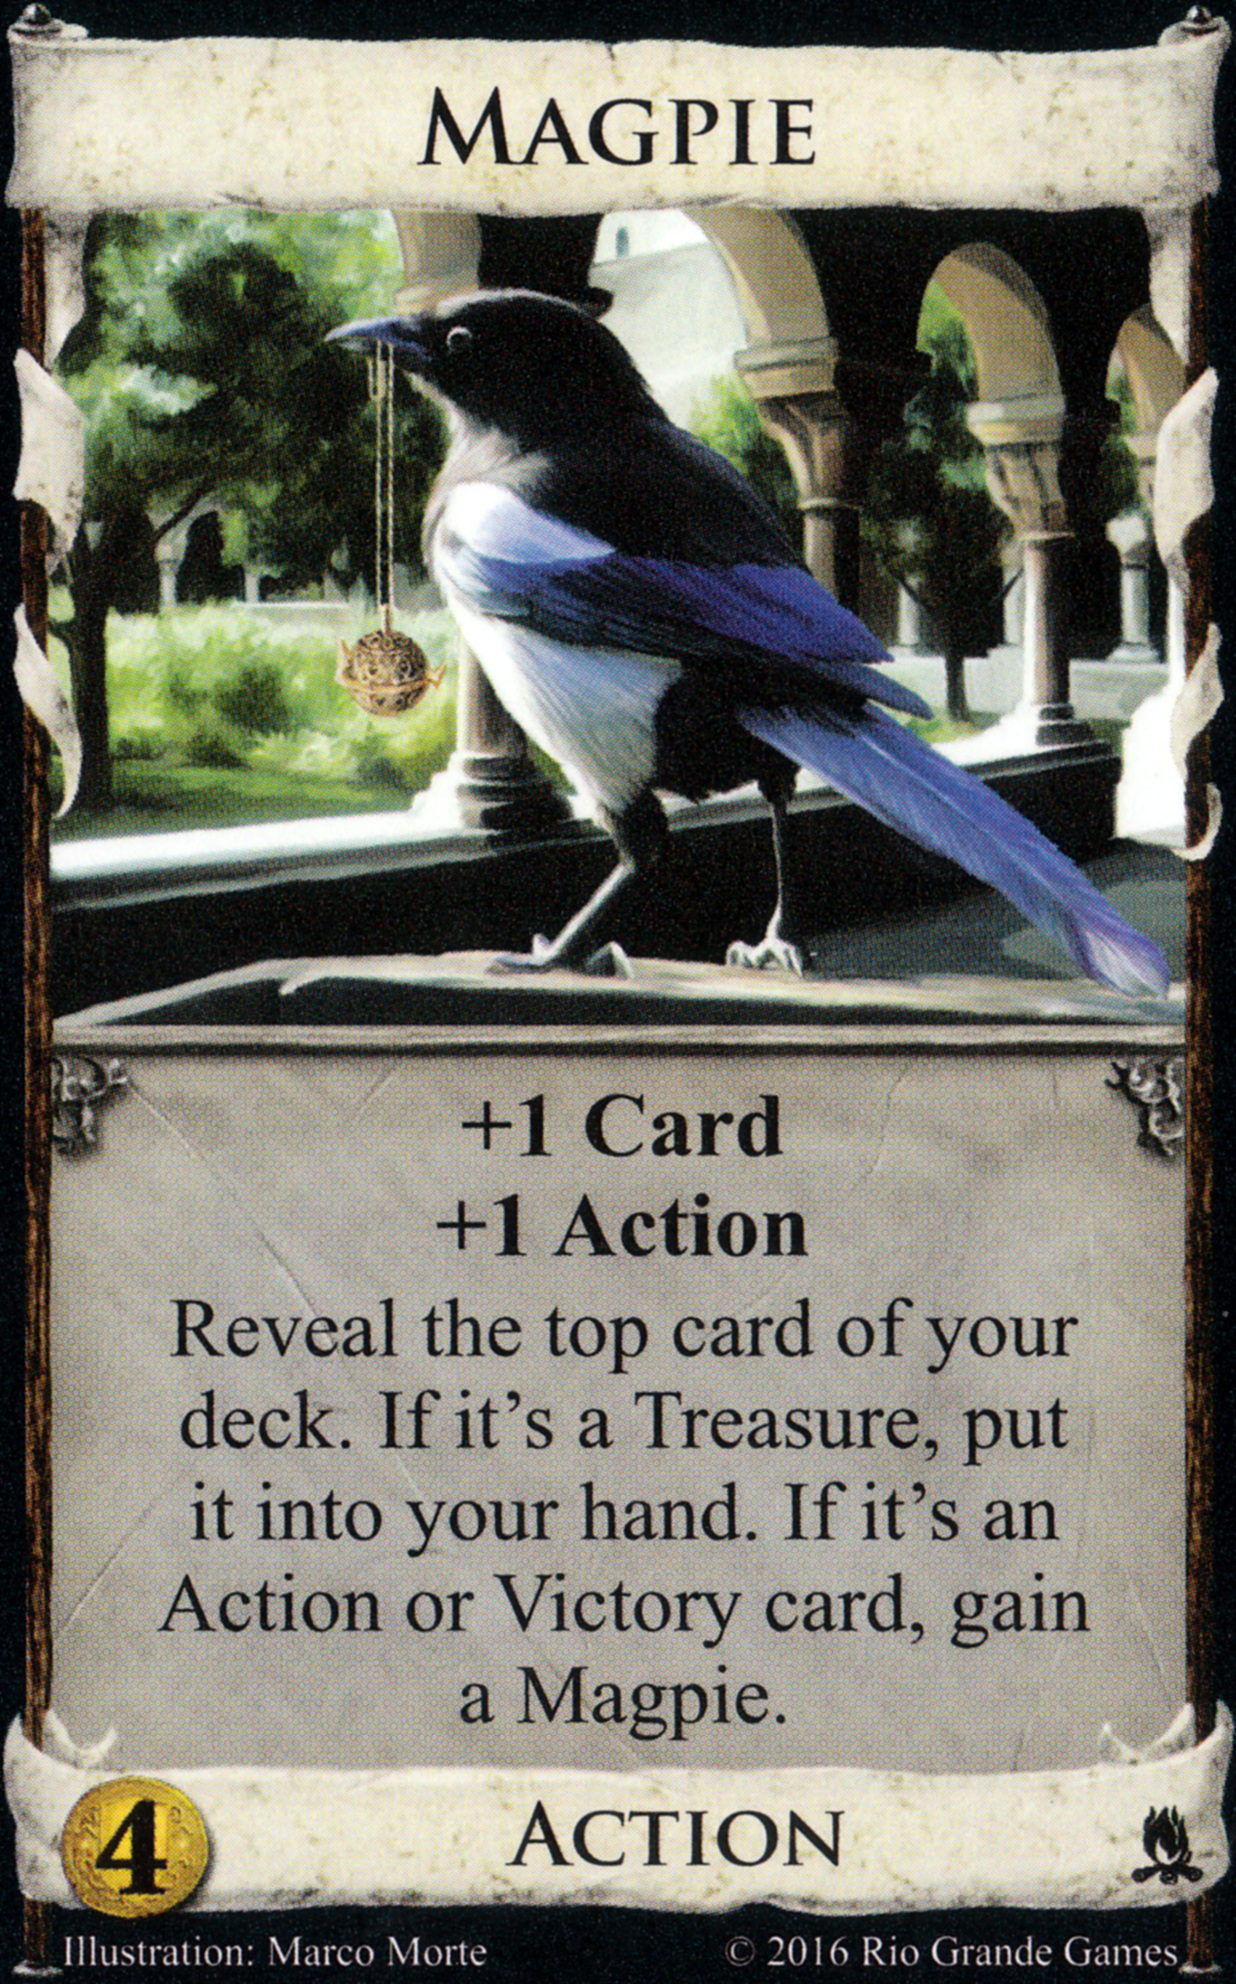 http://wiki.dominionstrategy.com/images/1/10/Magpie.jpg